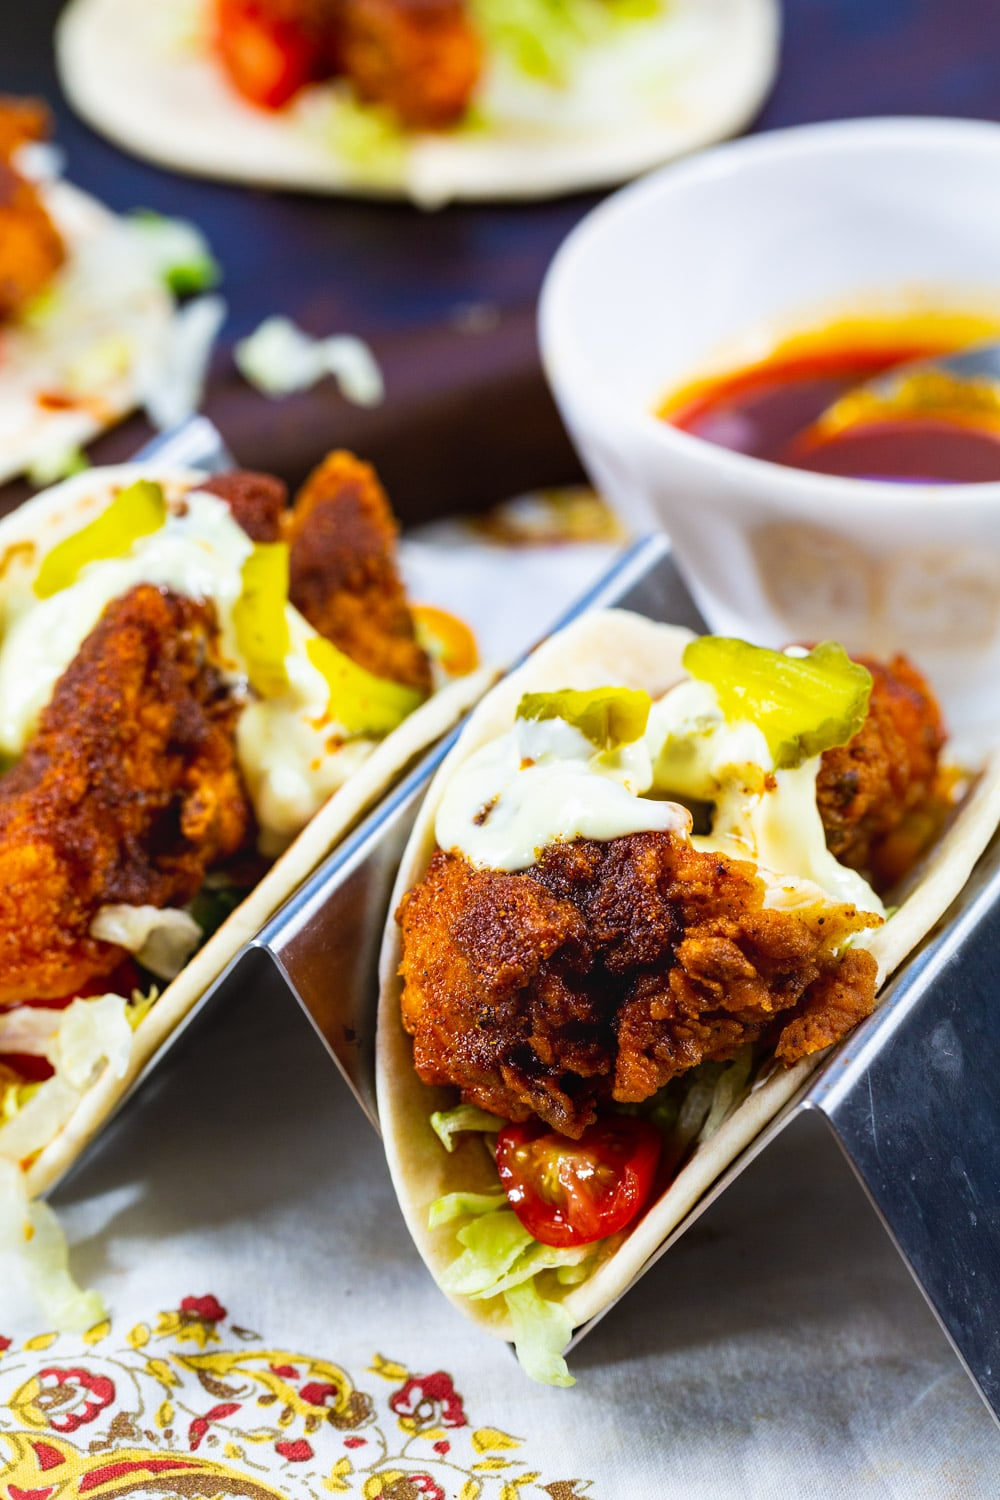 Fried Chicken Tacos with hot sauce topped with dill pickles.